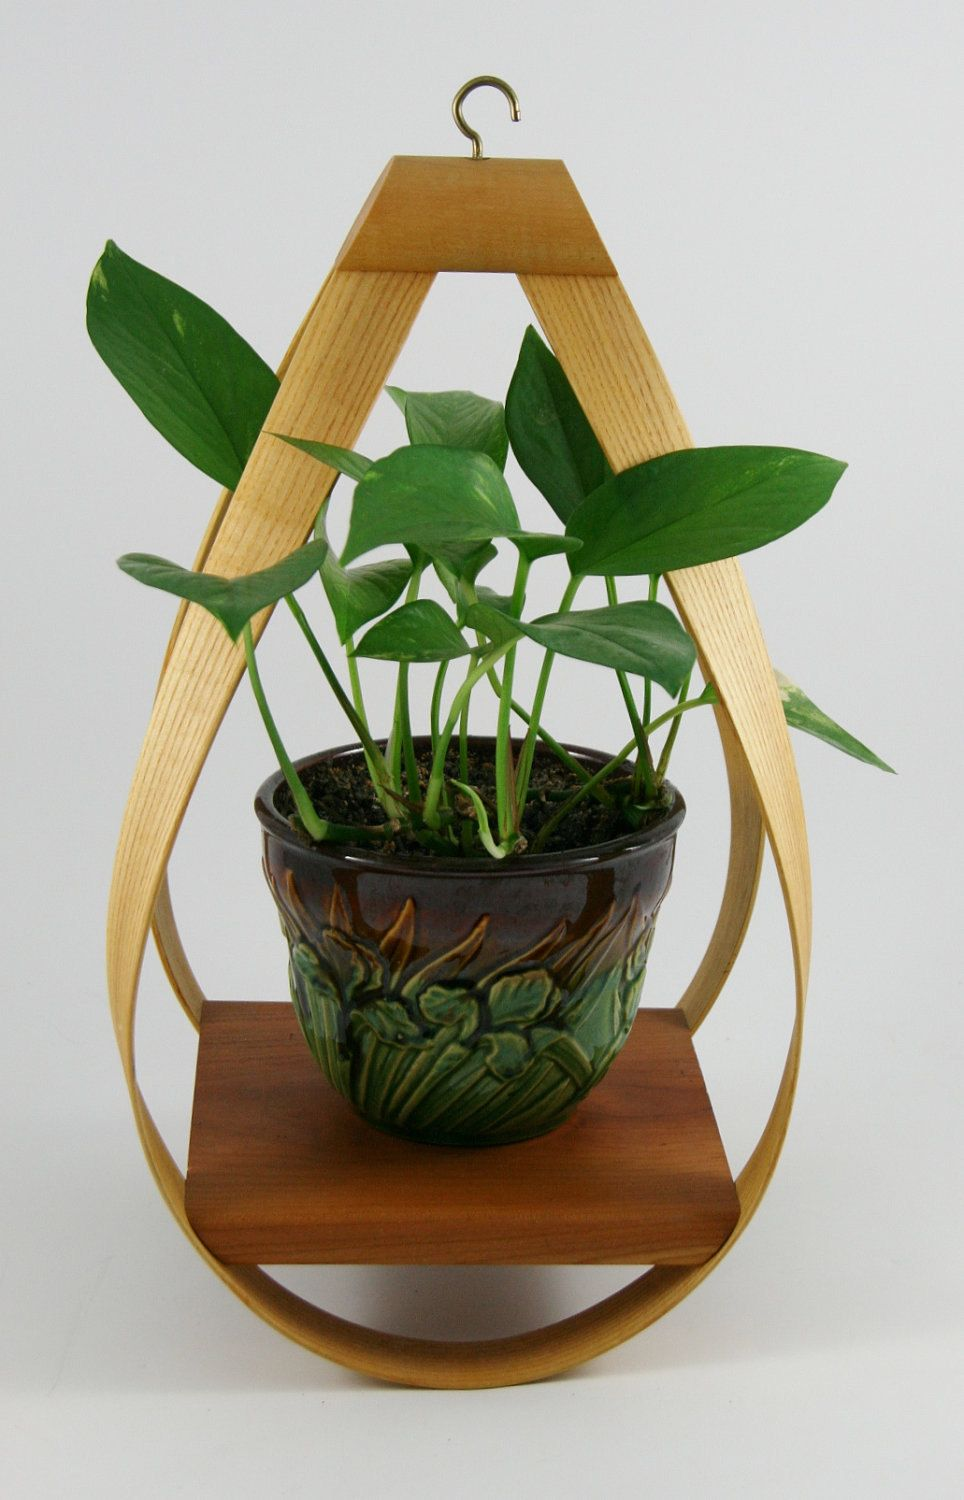 Danish Modern Bent Wood Hanging Planter